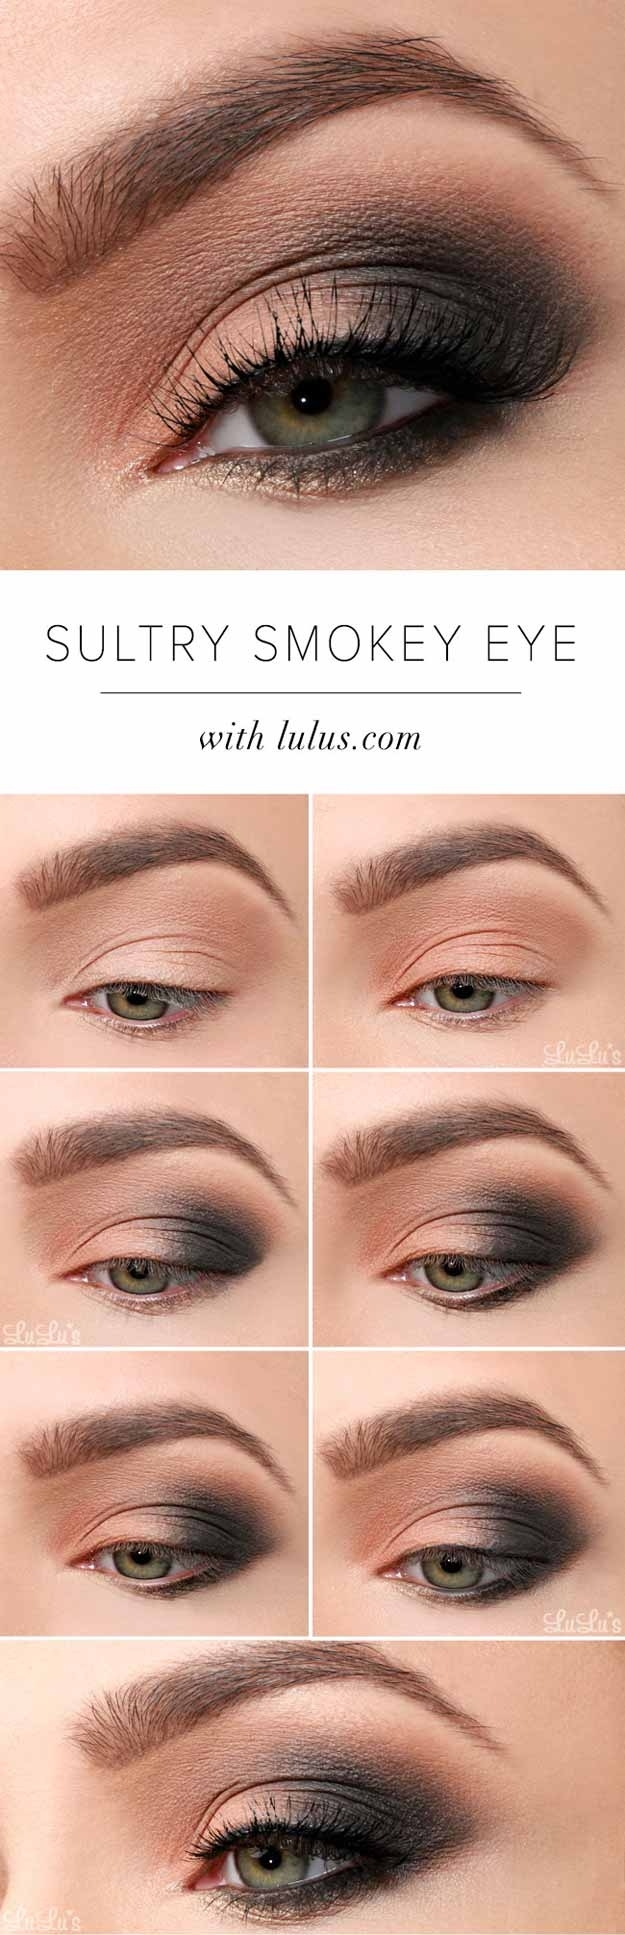 35 Wedding Makeup For Blue Eyes - The Goddess for How To Apply Eyeshadow For Blue Eyes And Brown Hair